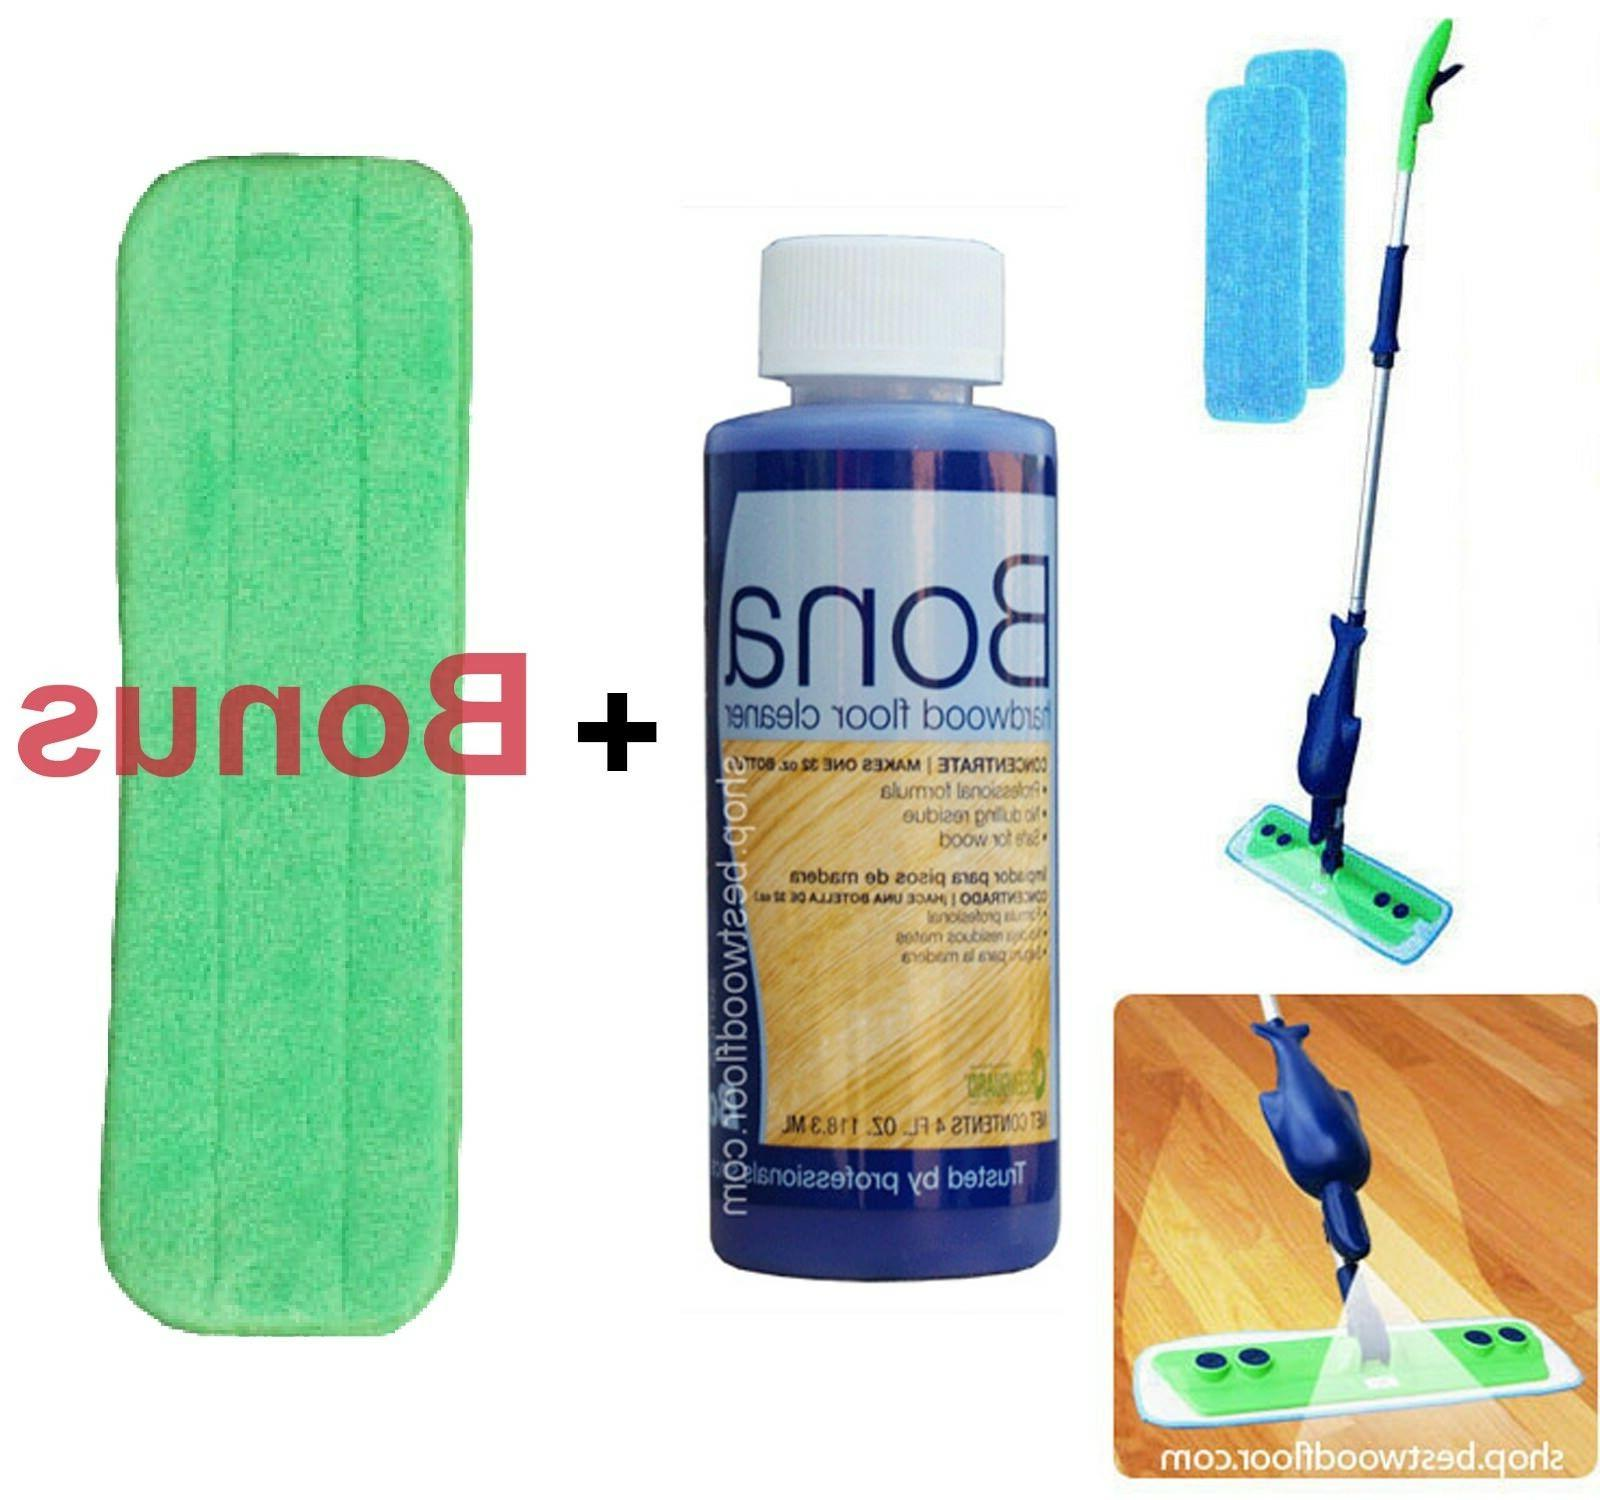 refillable spray mop kit with bona hardwood